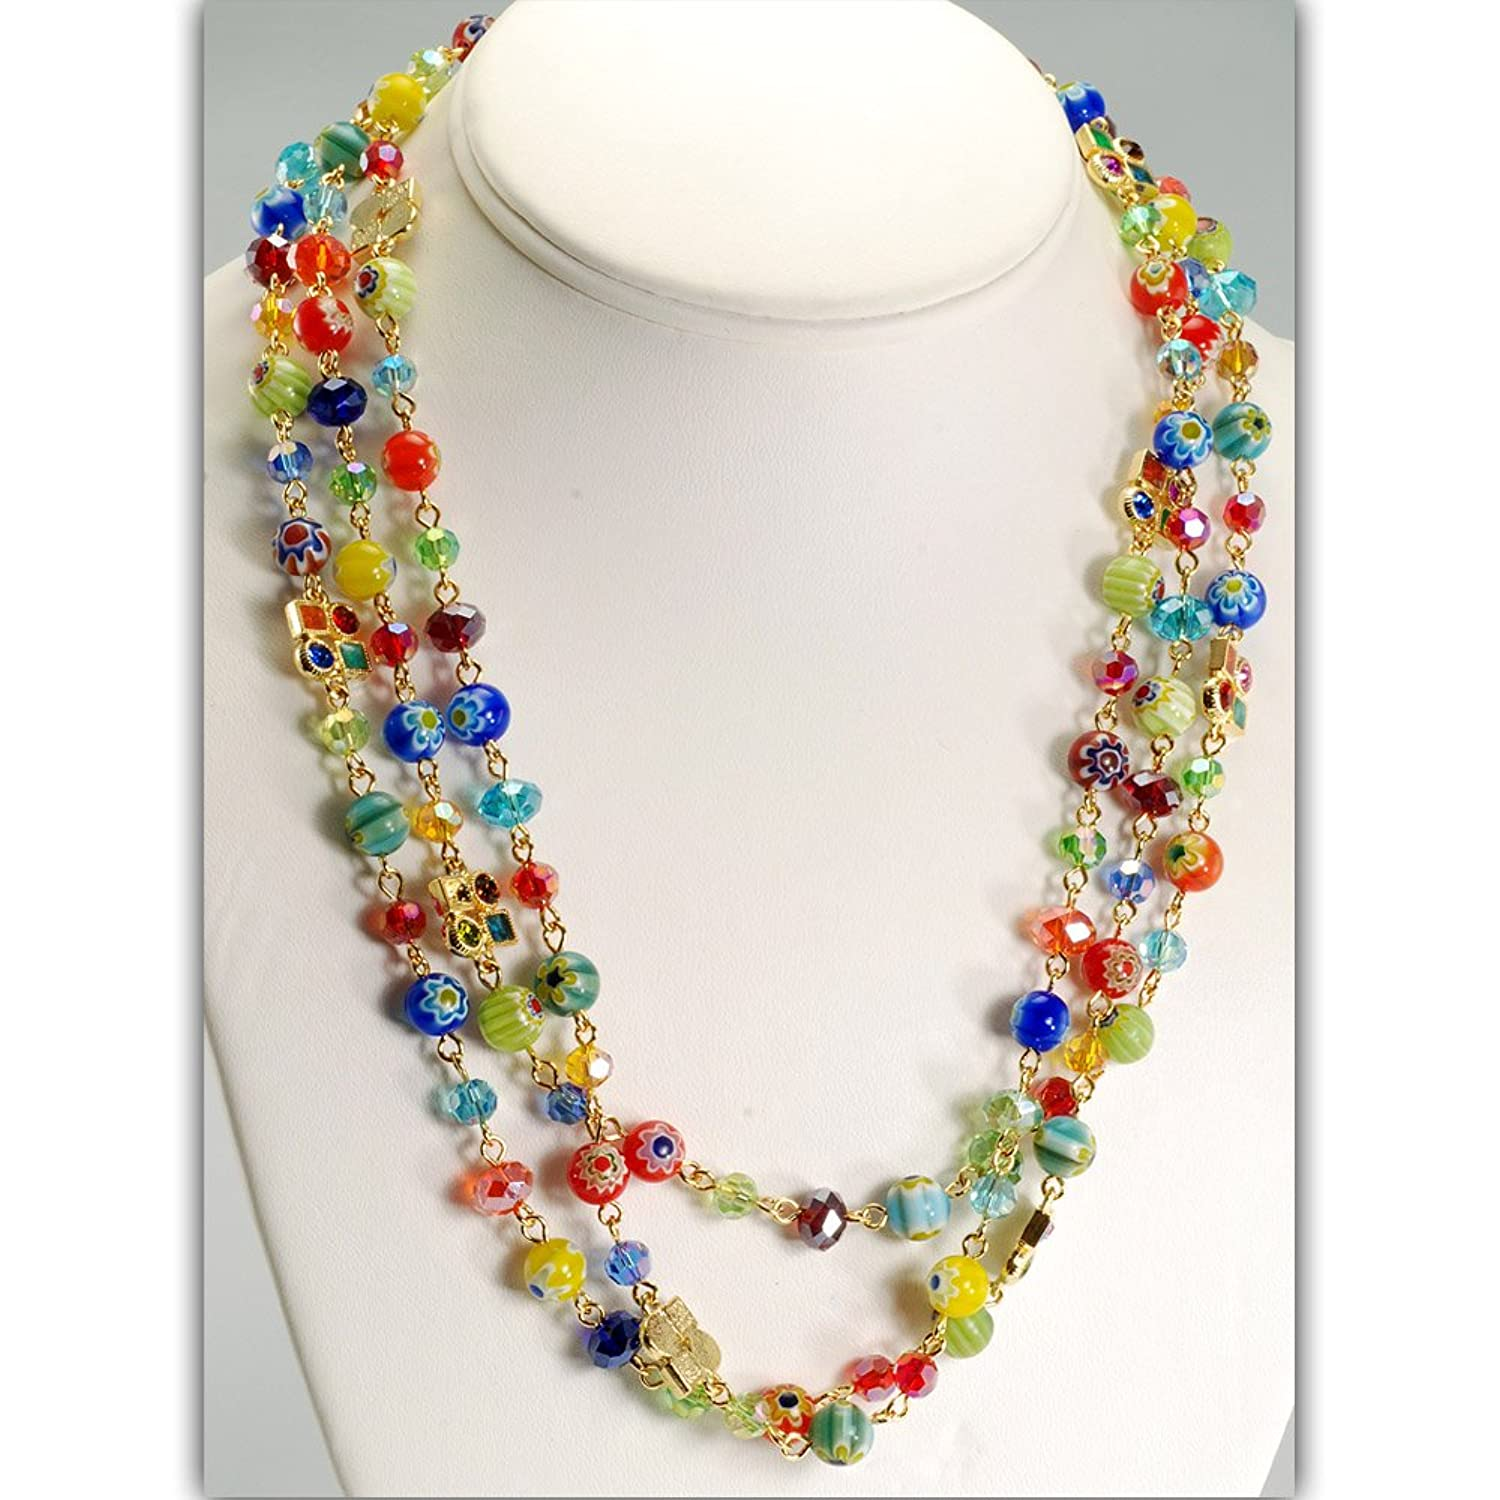 1950s Costume Jewelry Sweet Romance Long Candy Beads Necklace $54.00 AT vintagedancer.com